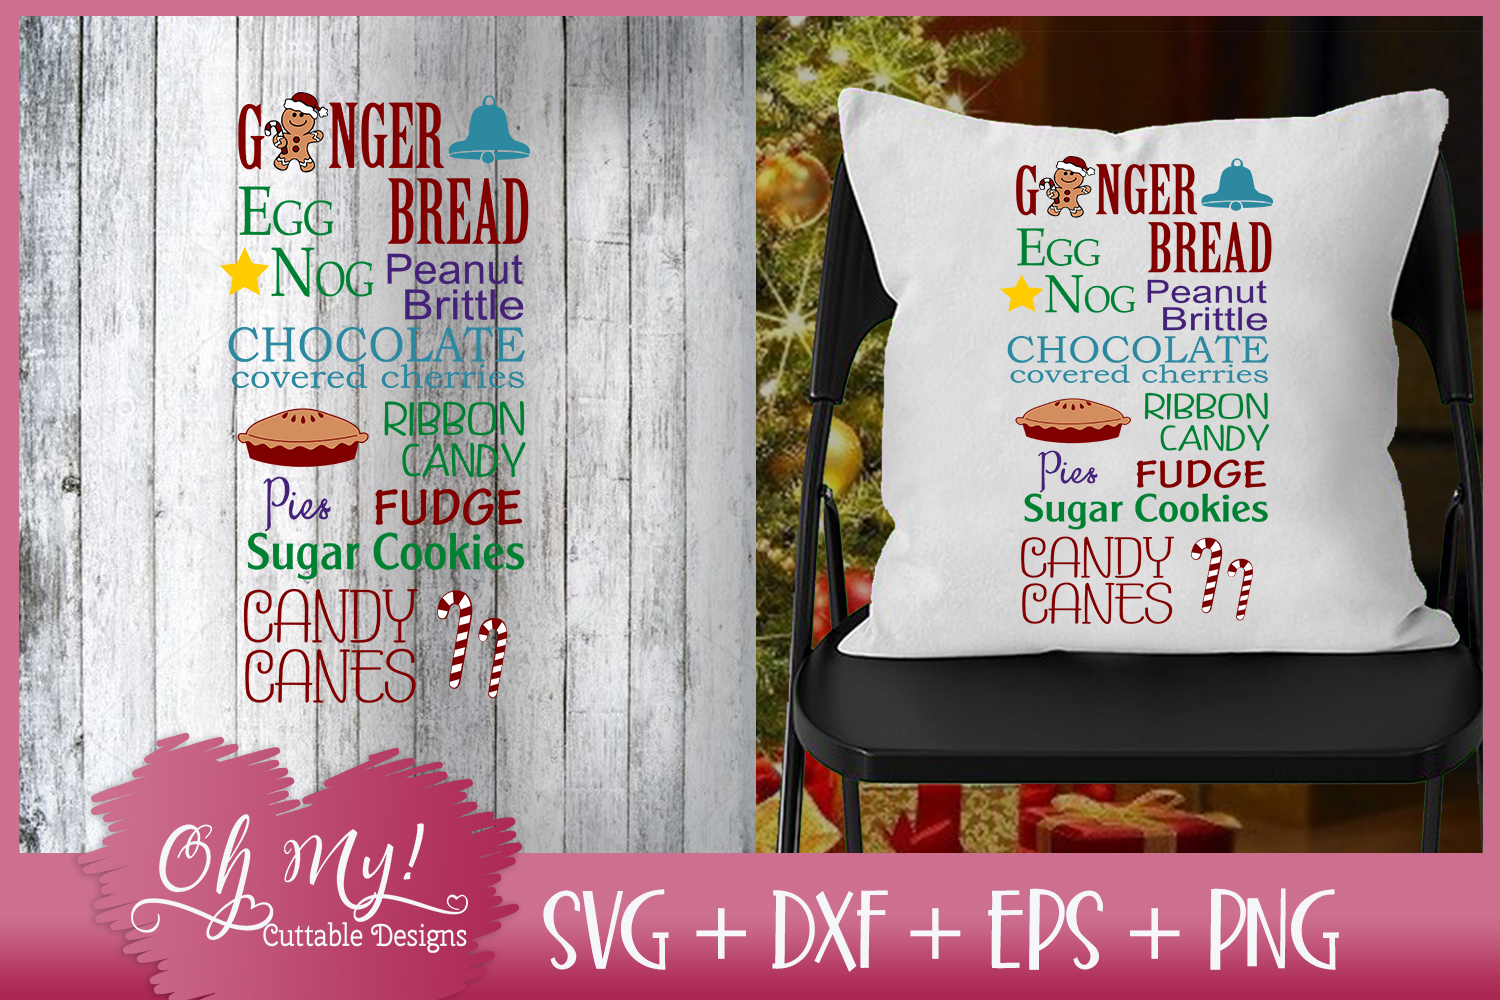 Gingerbread - Eggnog - Candy Canes - SVG DXF EPS PNG example image 1